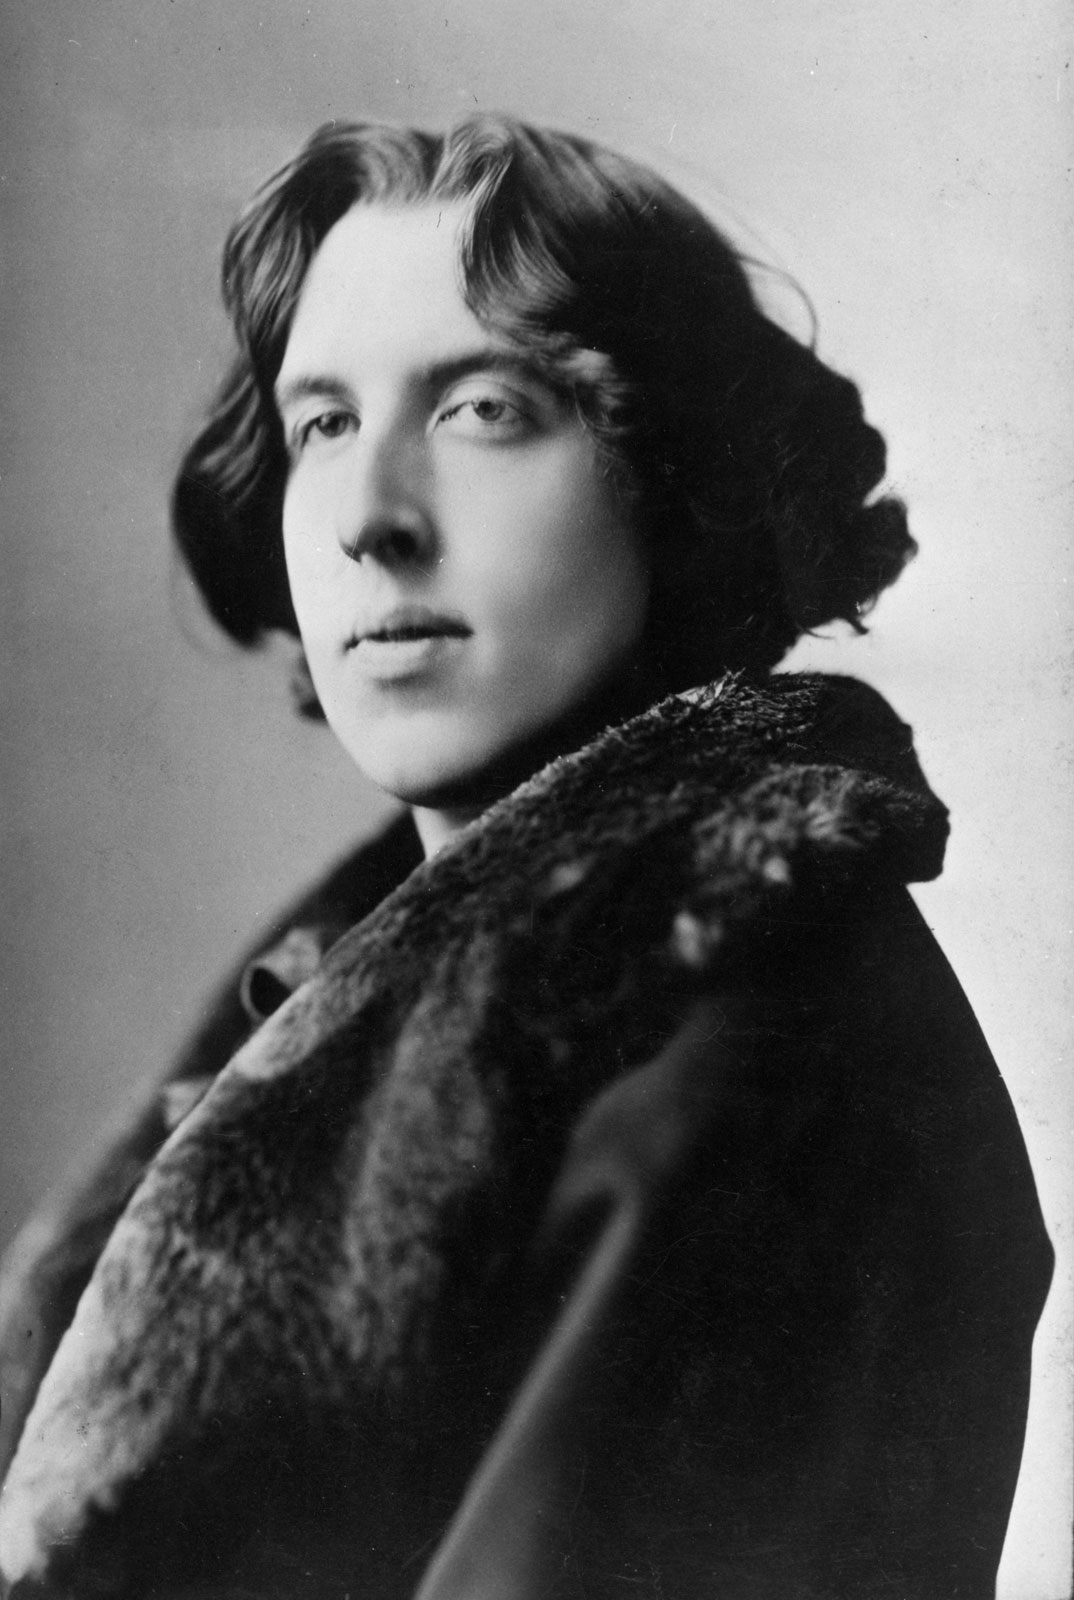 Photographic portrait of Oscar Wilde